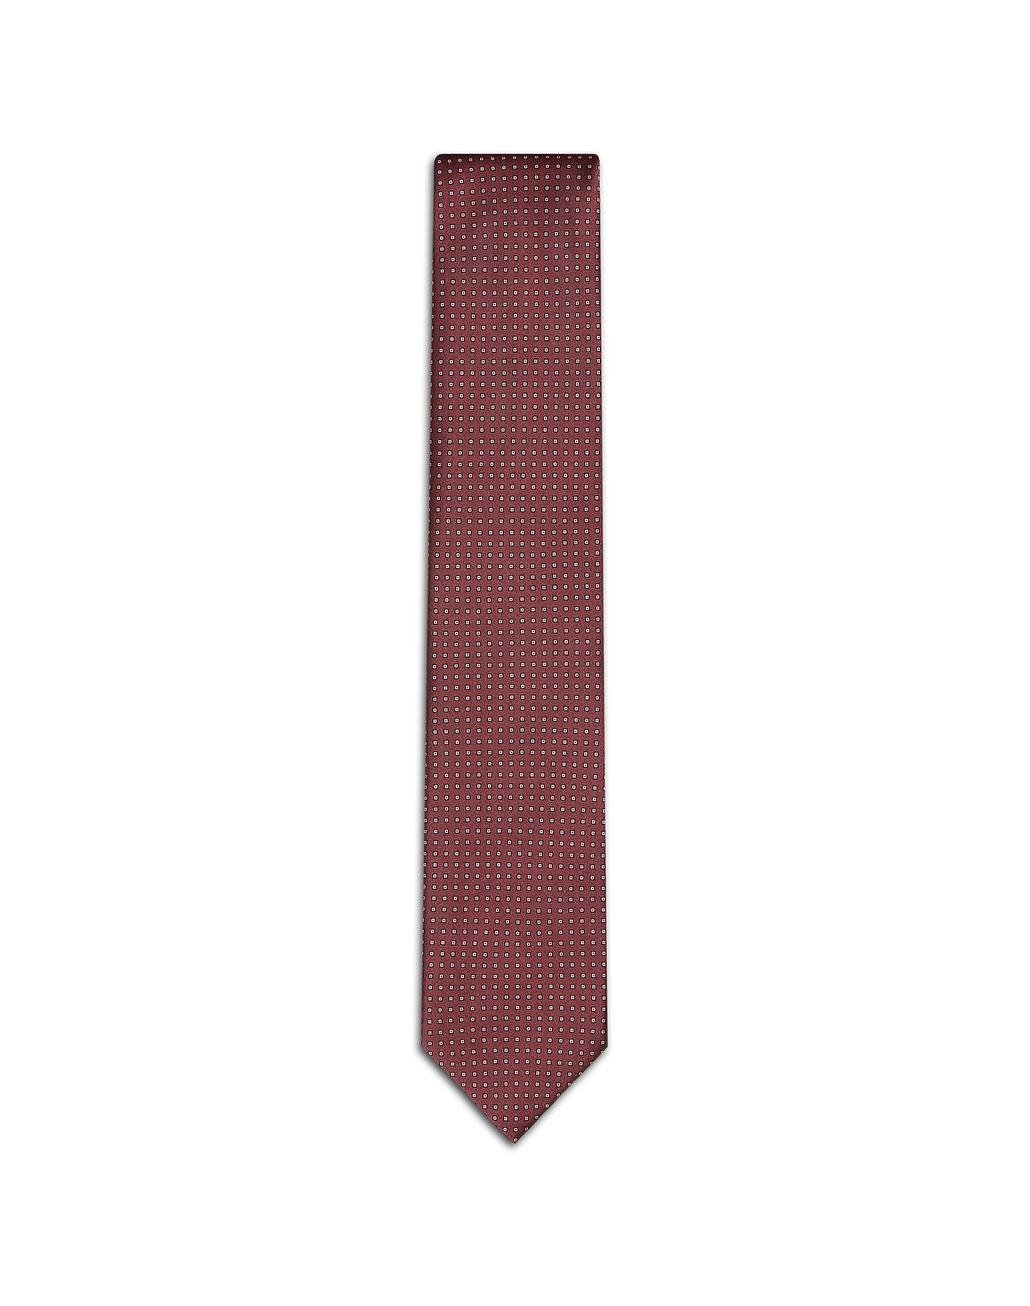 BRIONI Cravate avec motif miniature bordeaux Cravate Homme f